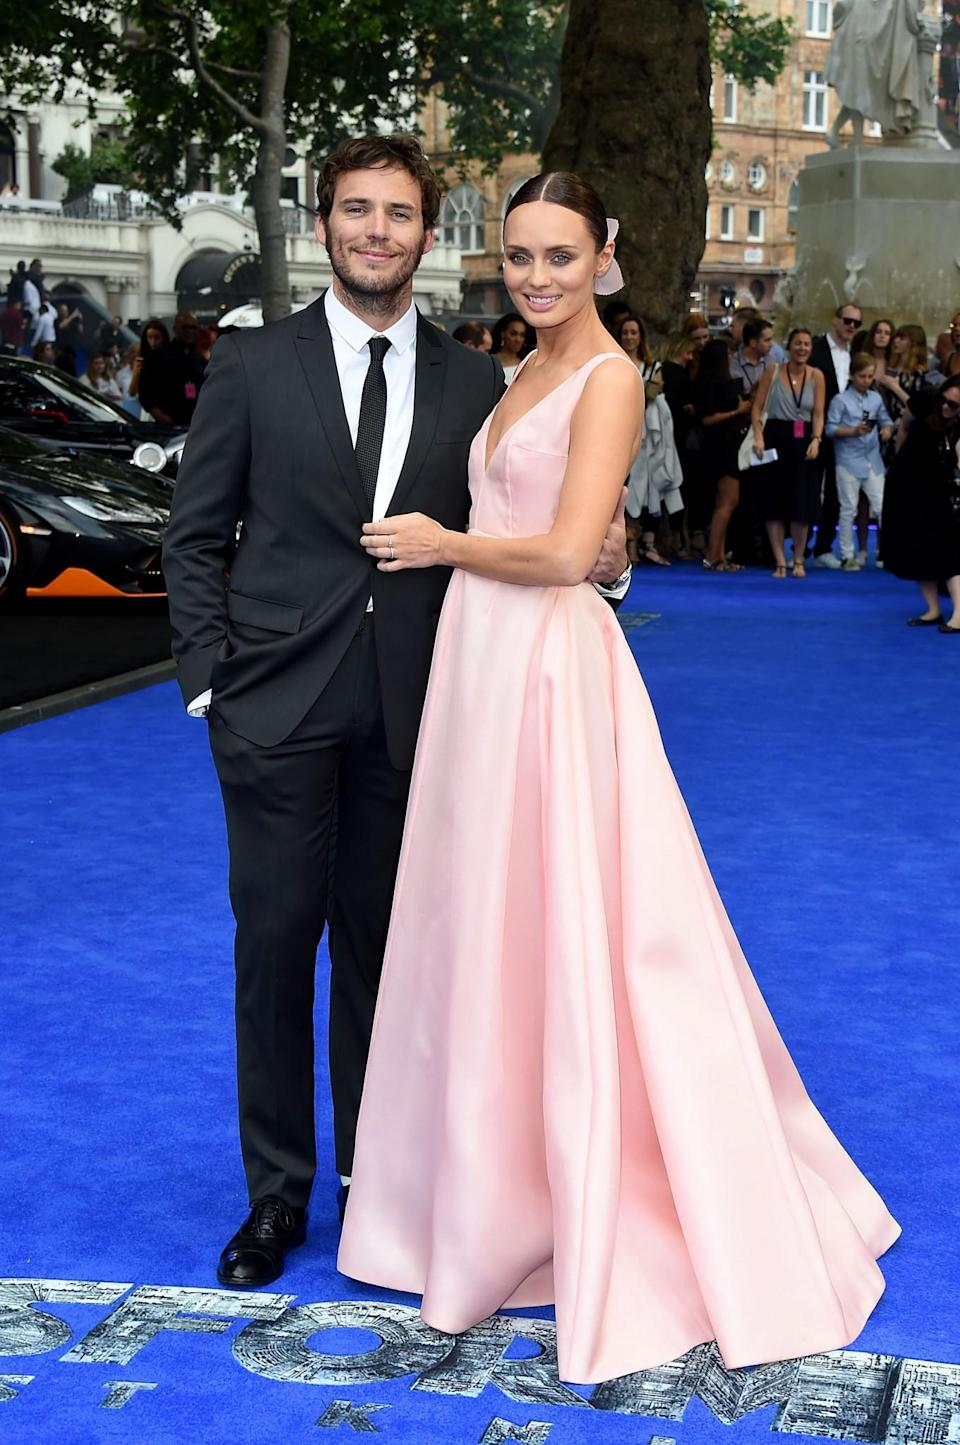 <p>British designer Emilia Wickstead rustled up this pale pink number for Laura, which she wore as she took to the red carpet with husband Sam for her new film's premiere. <br><em>[Photo: Getty]</em> </p>